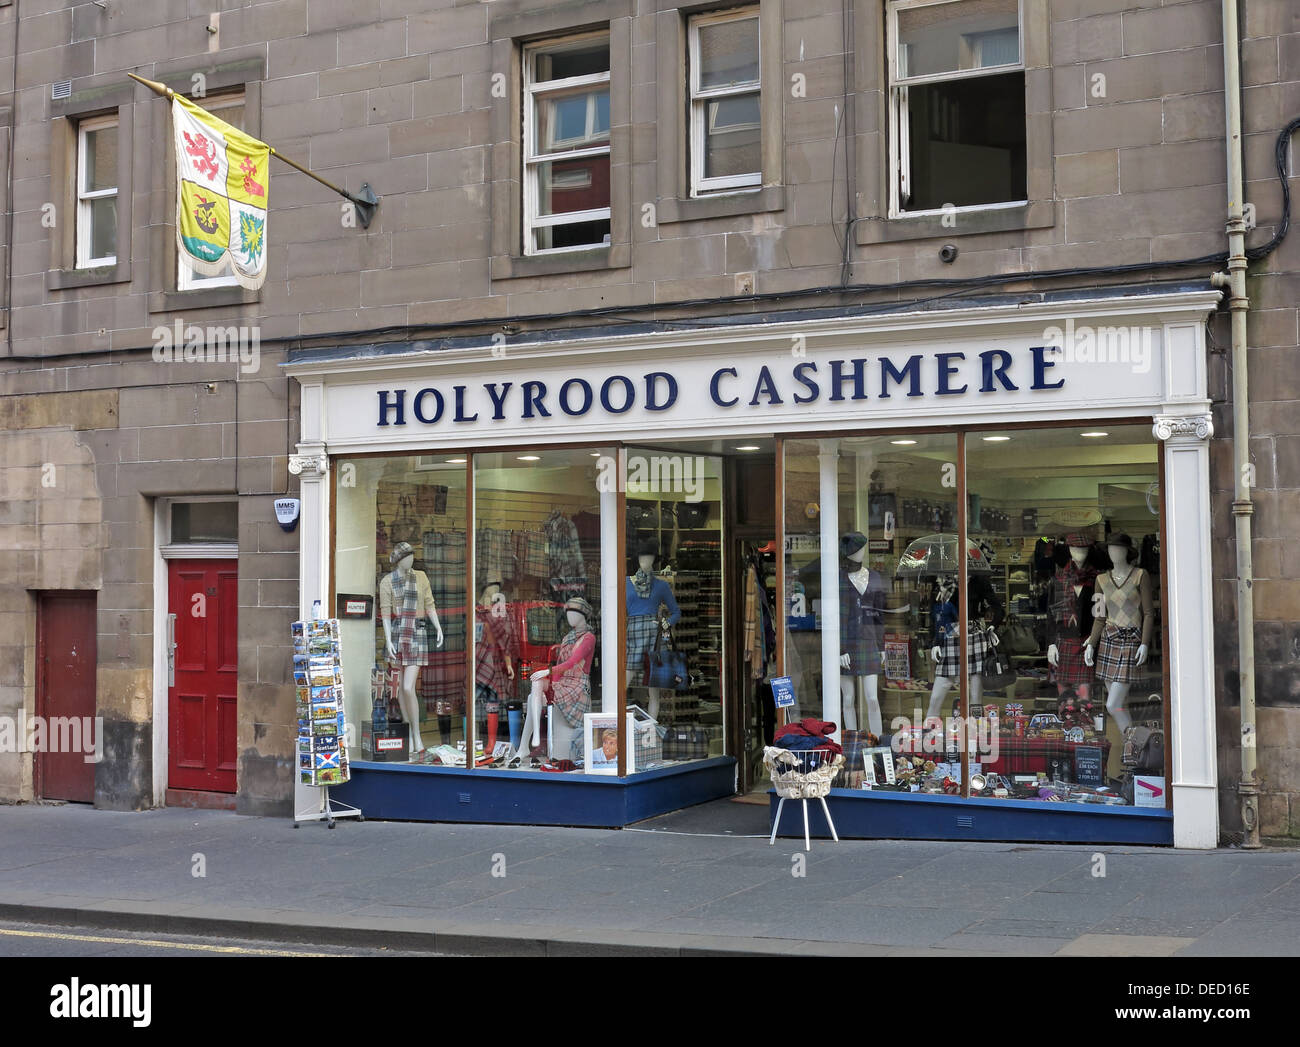 Holyrood cashmere shop, Royal Mile, Edinburgh,Scotland, UK - Stock Image